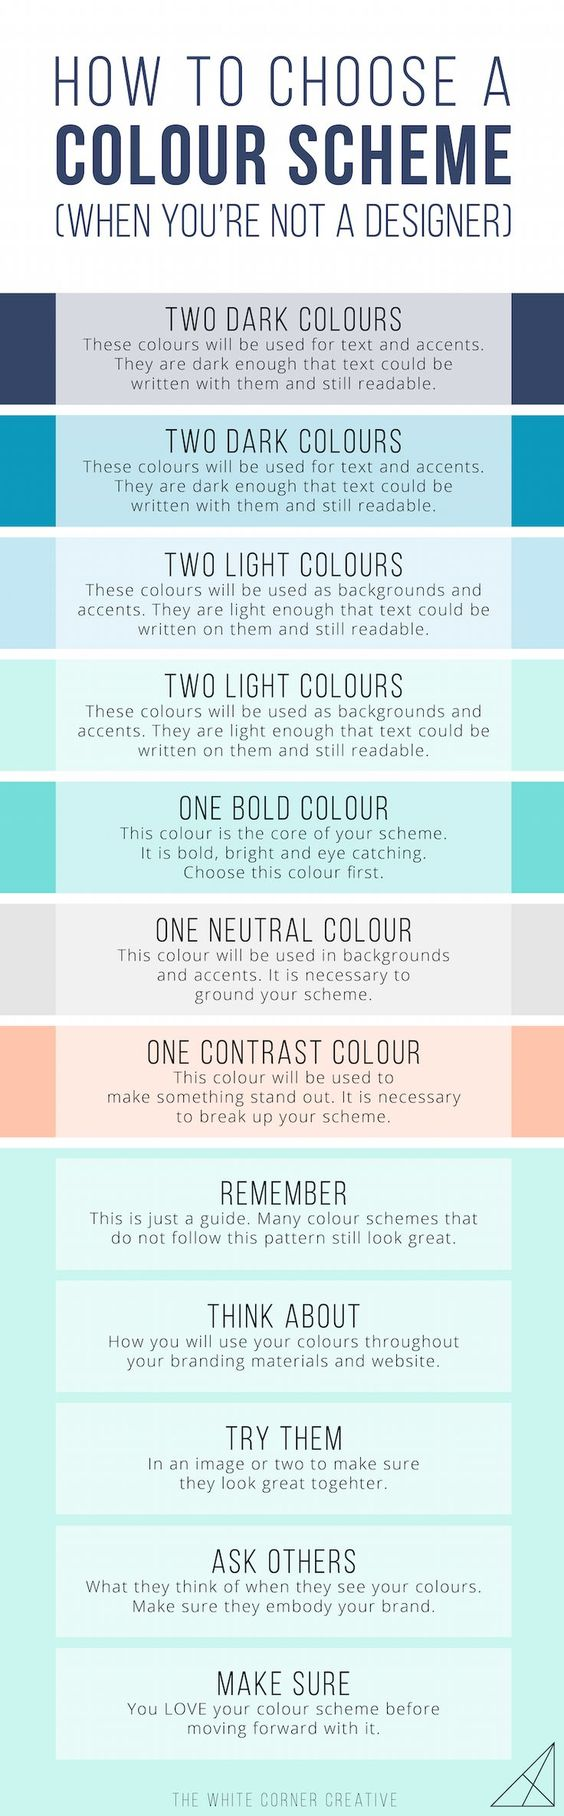 Your colour scheme is the base of your entire visual brand, so it's vital that you choose a good one. Here's how to pick a gorgeous scheme on your own.